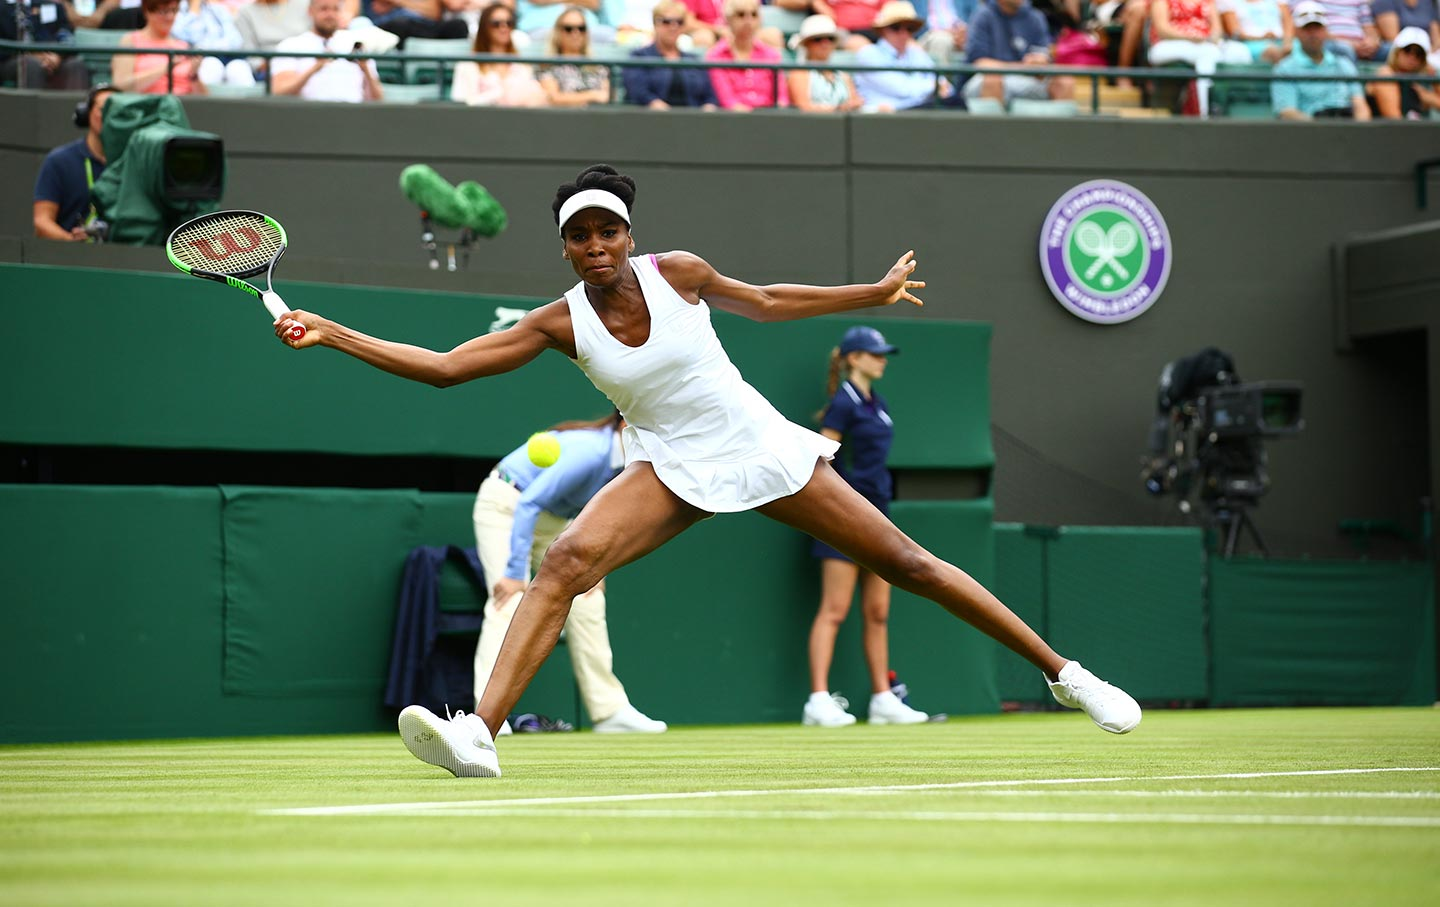 Venus Williams during her first match of the 2017 Wimbledon tournament on July 3, 2017.